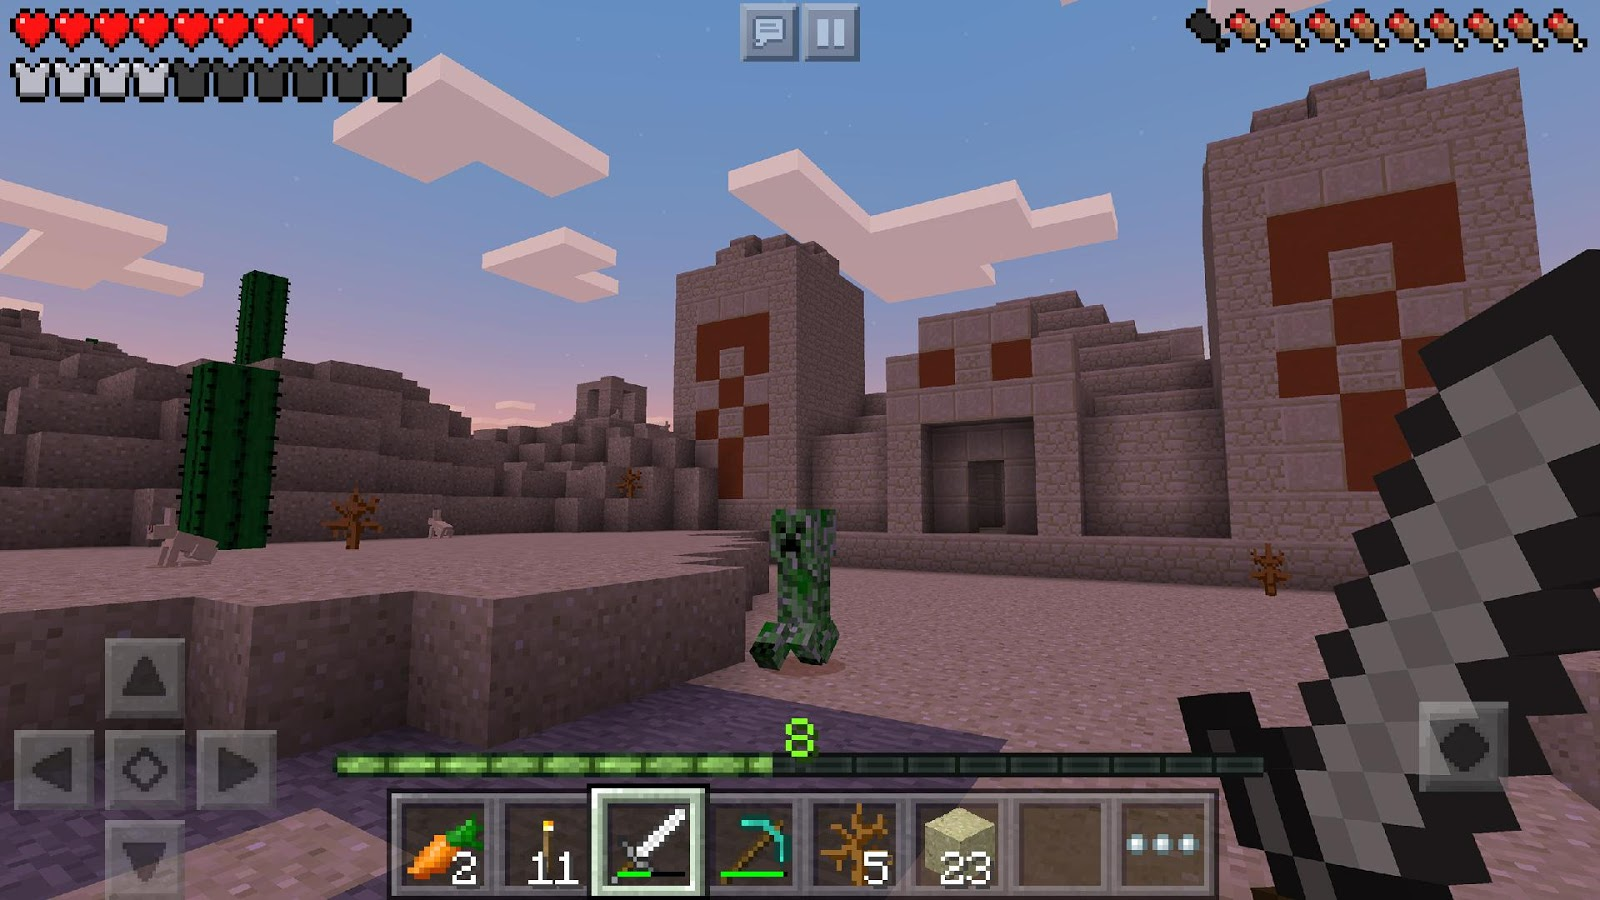 Minecraft APK Download Android Arcade Games - Skins para minecraft 1 8 premium